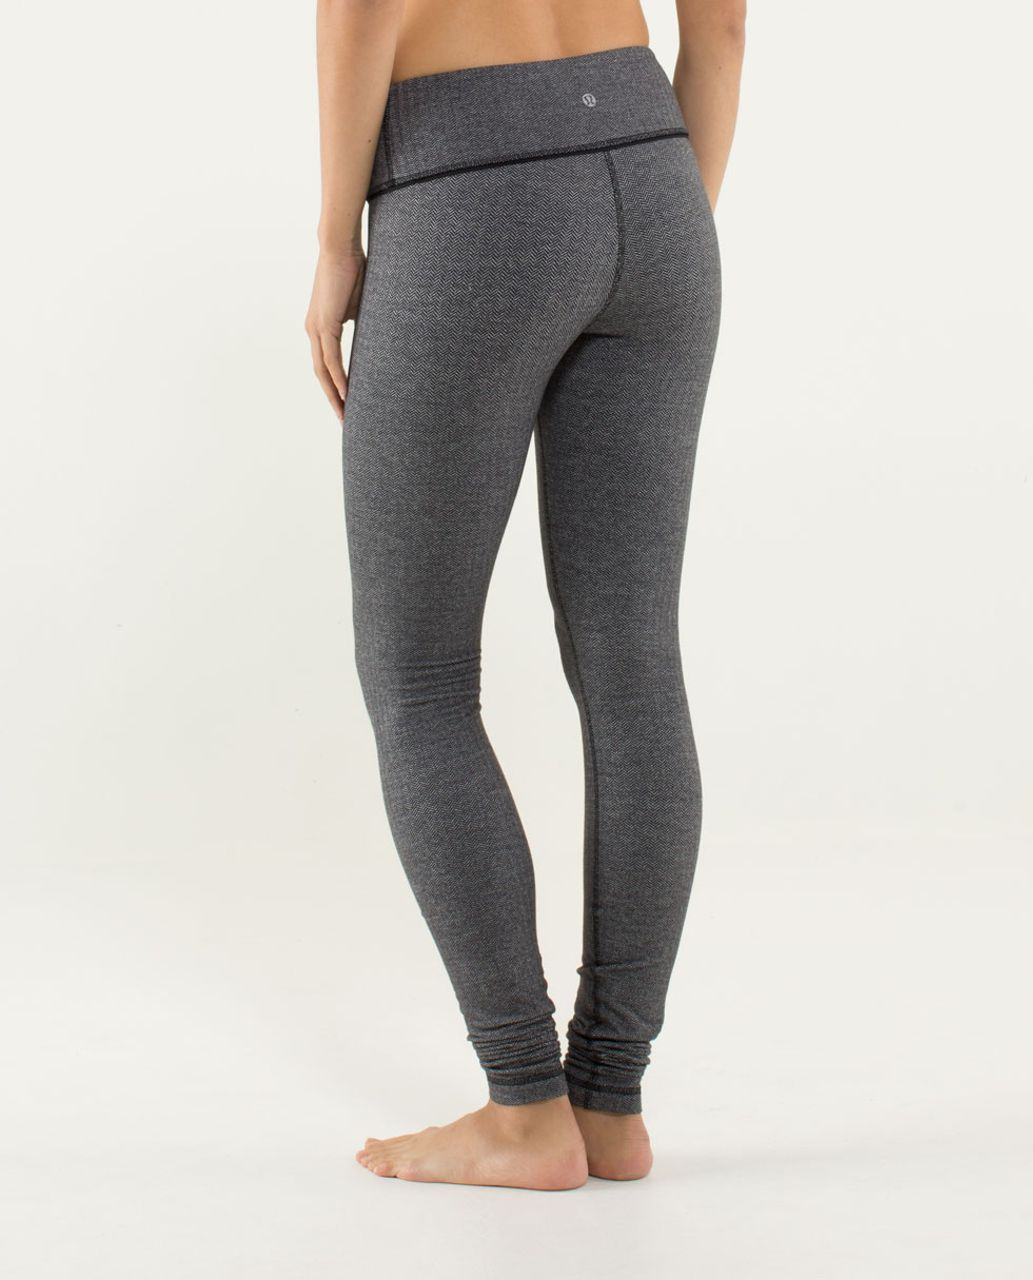 Lululemon Wunder Under Pant - Heathered Slate / Black